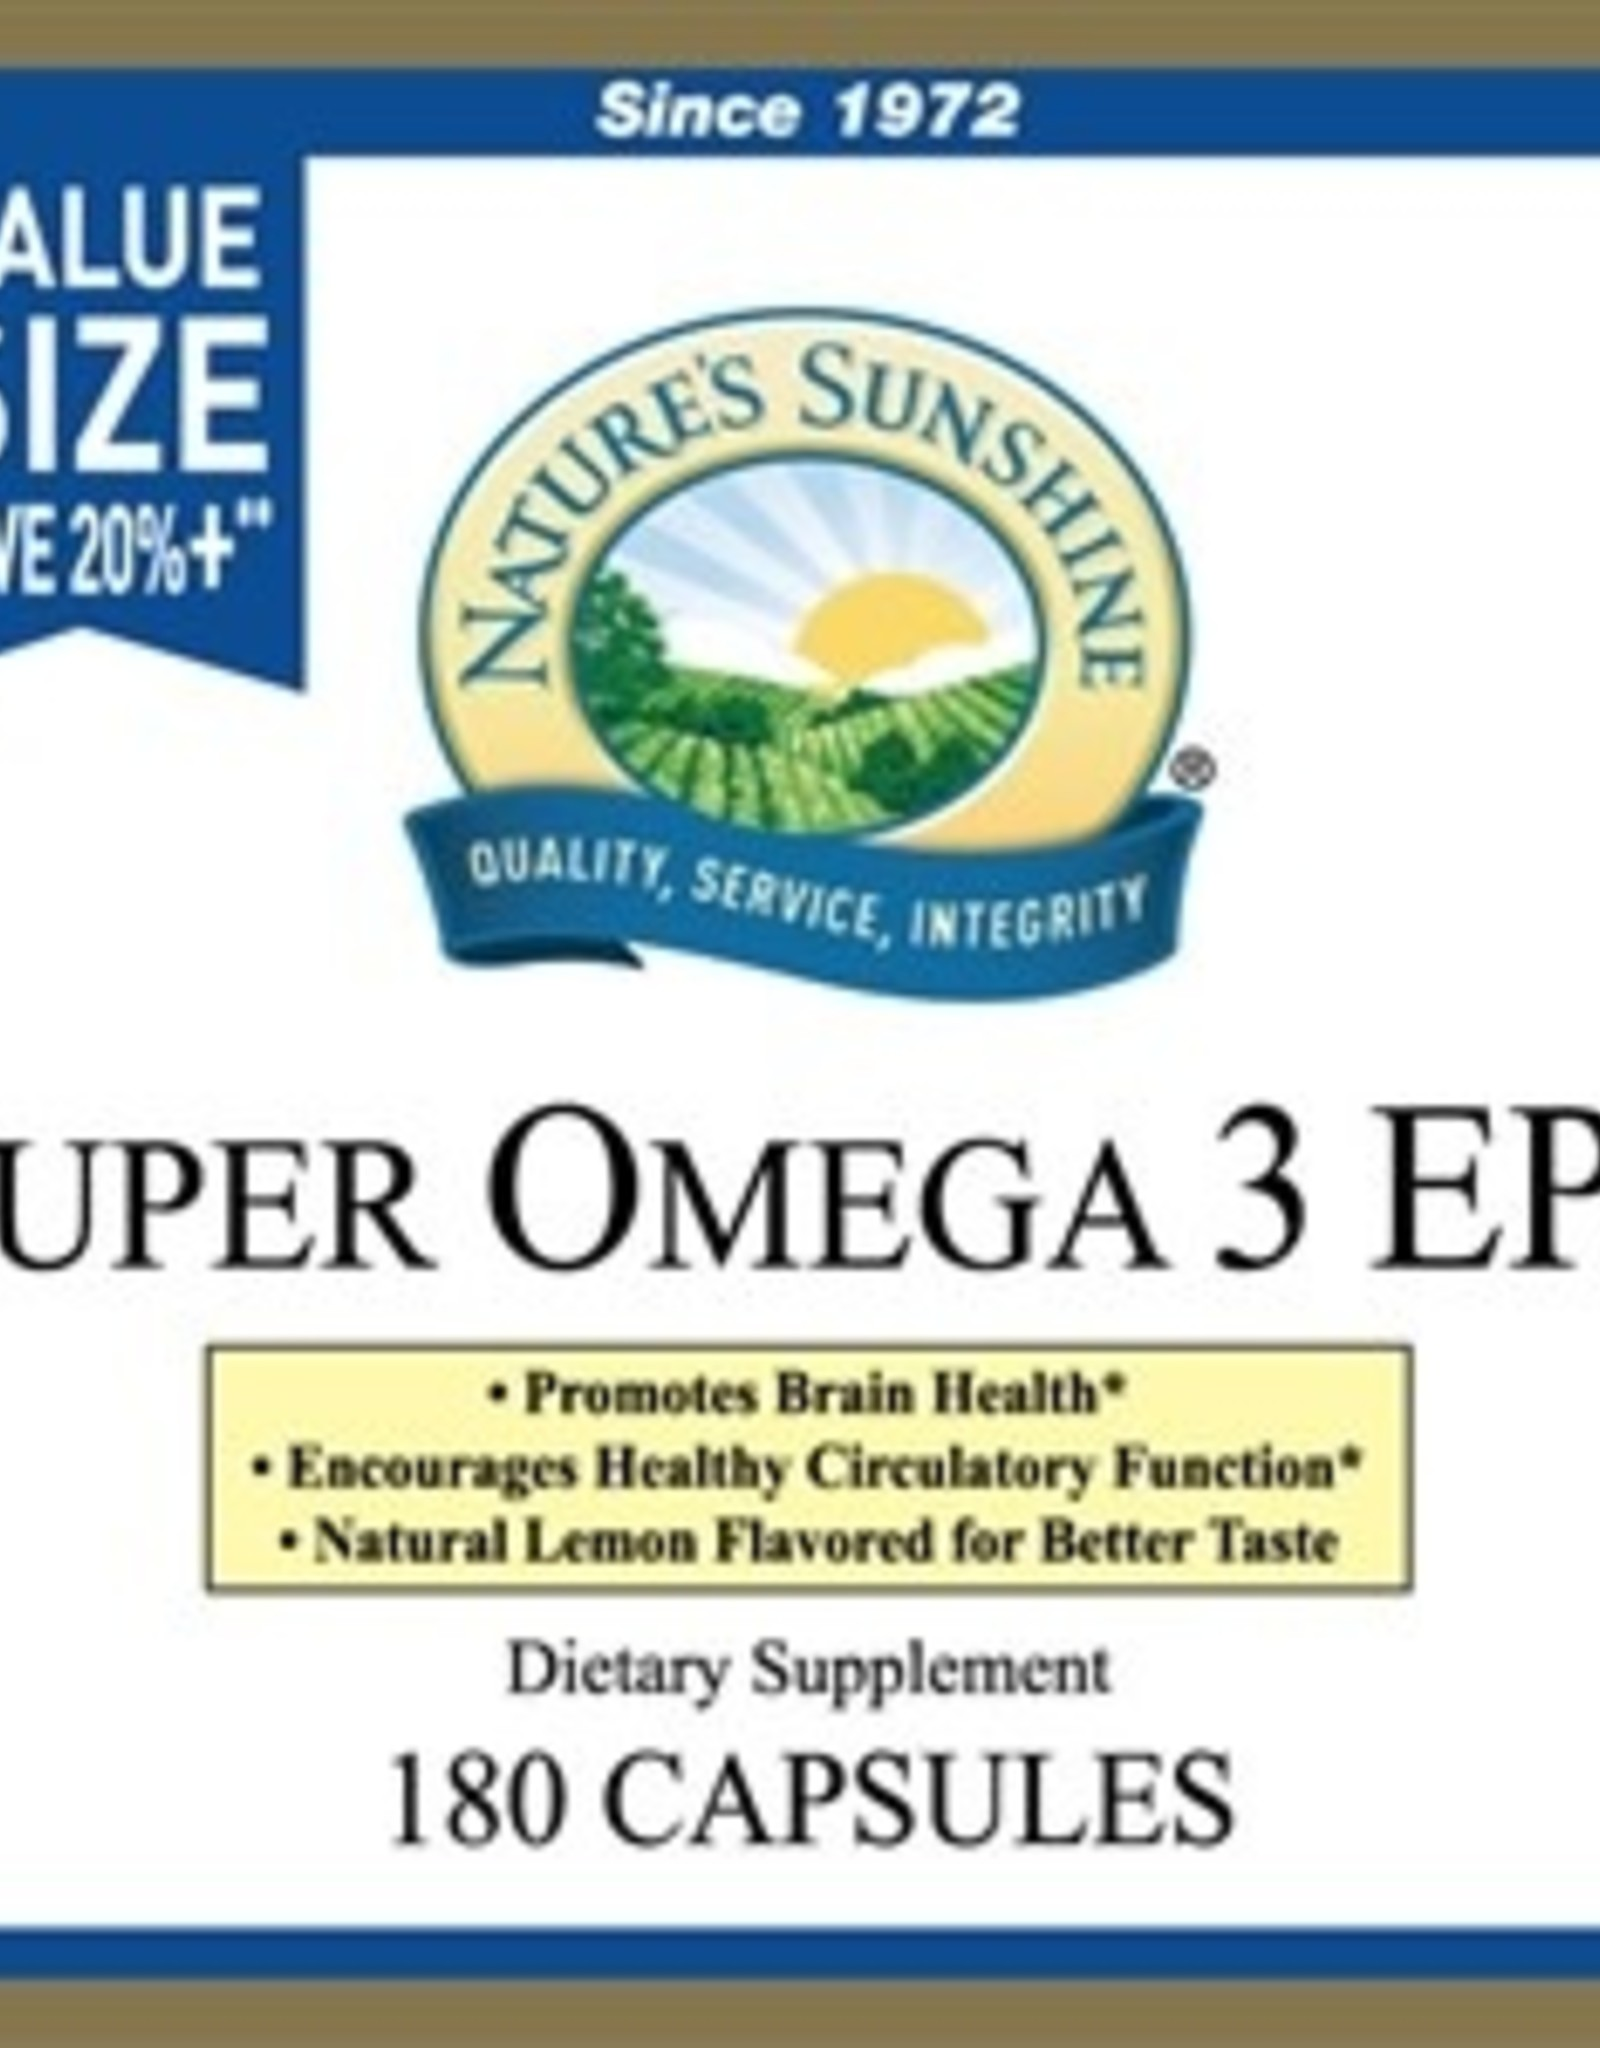 Nature's Sunshine Super Omega-3 EPA (180 softgel caps)